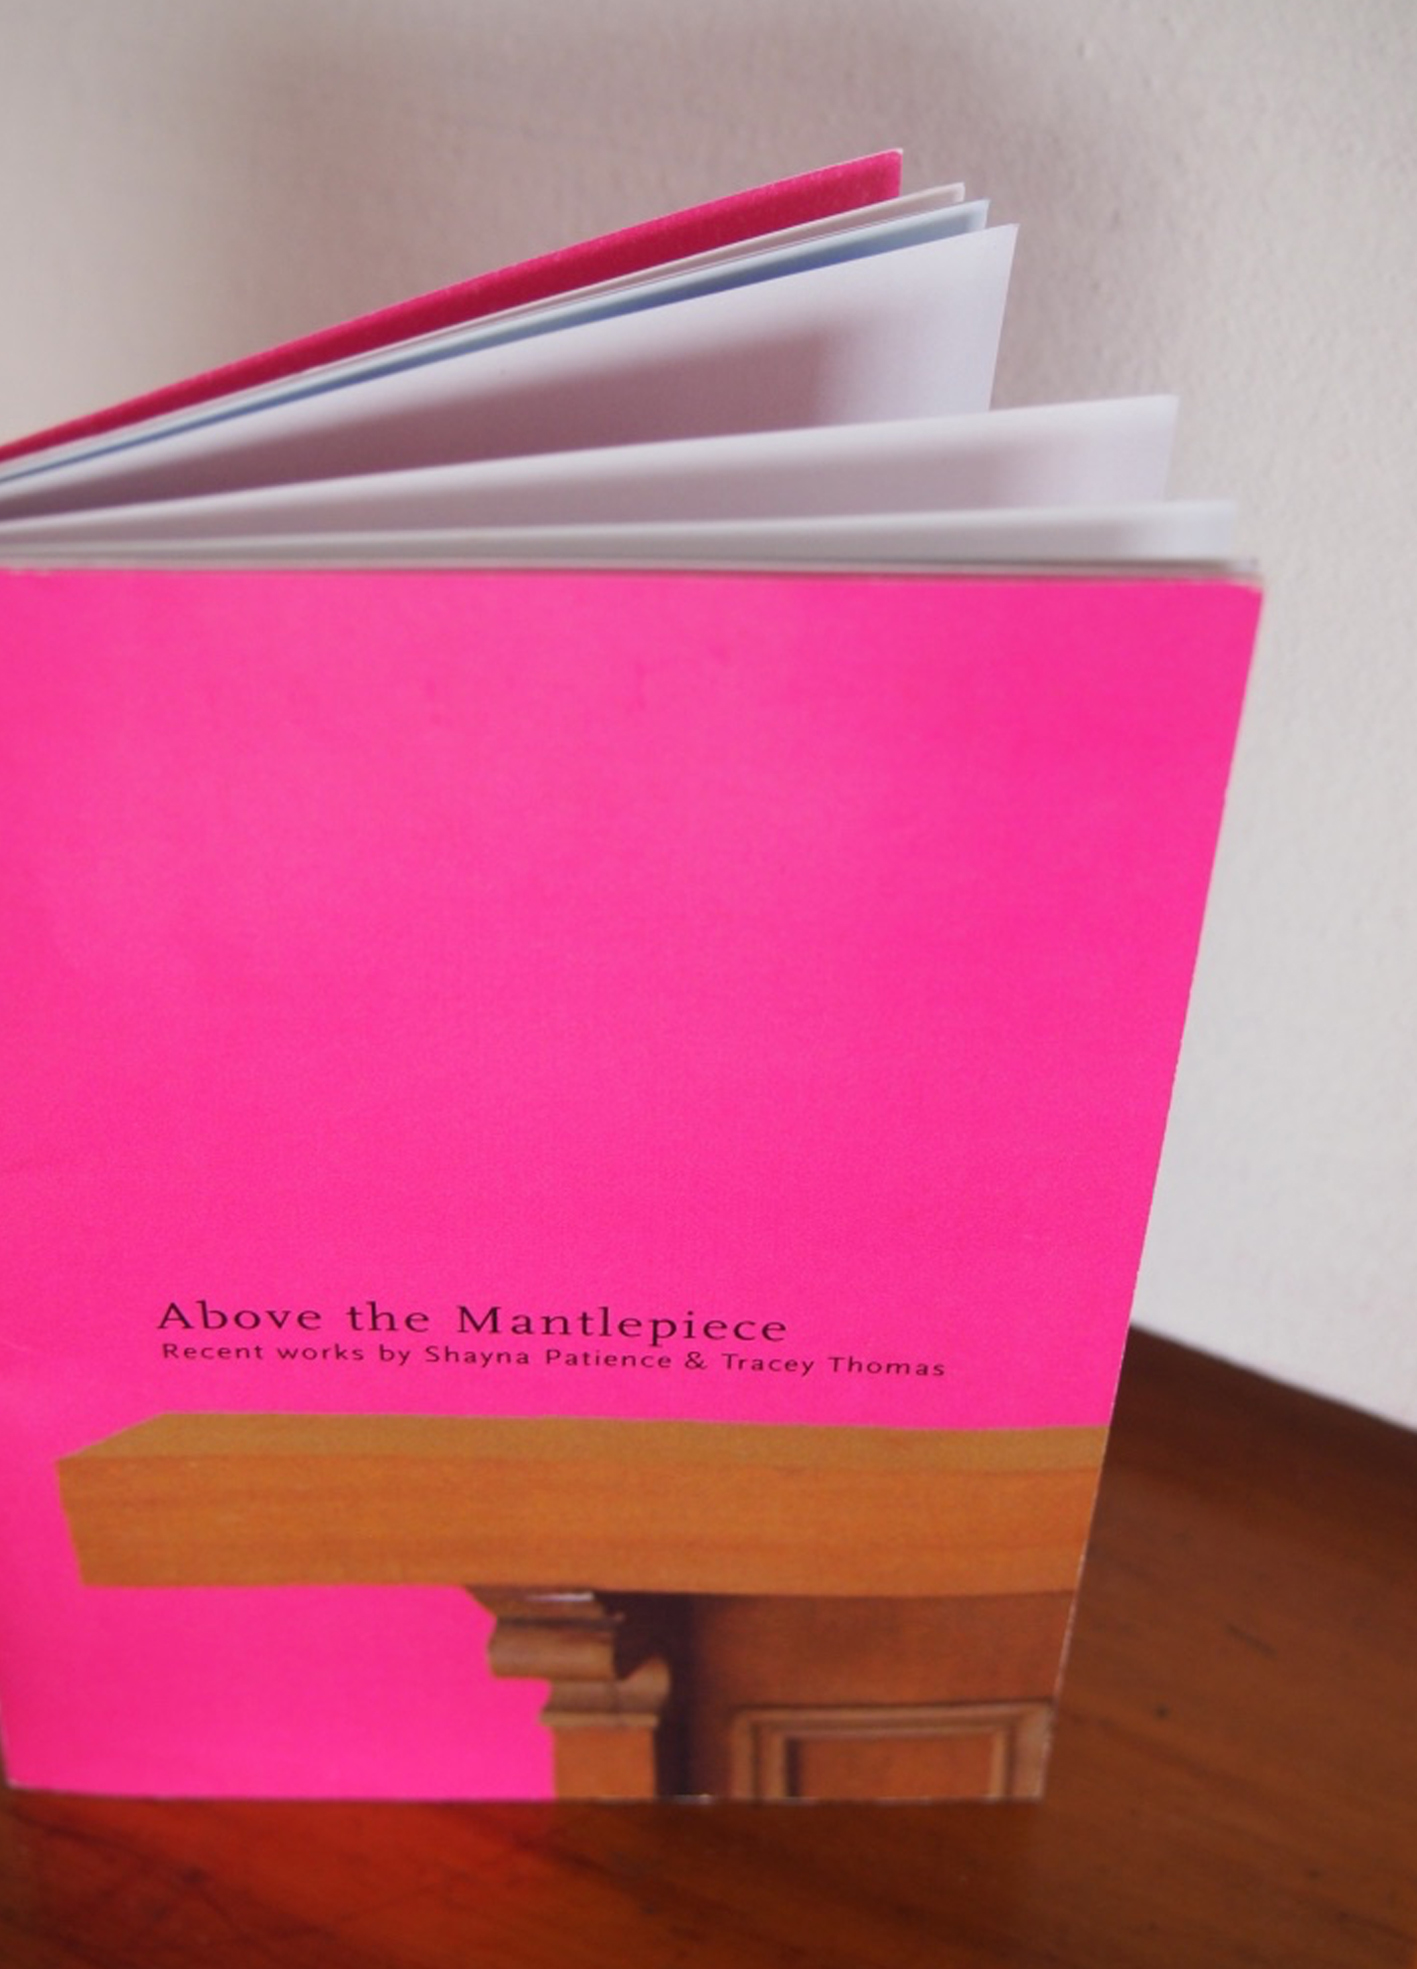 [Above the Mantlepiece] 2002 Exhibition Catalogue. Design and layout of the exhibition catalogue, following the look and feel of the concepts explored in the painters work.